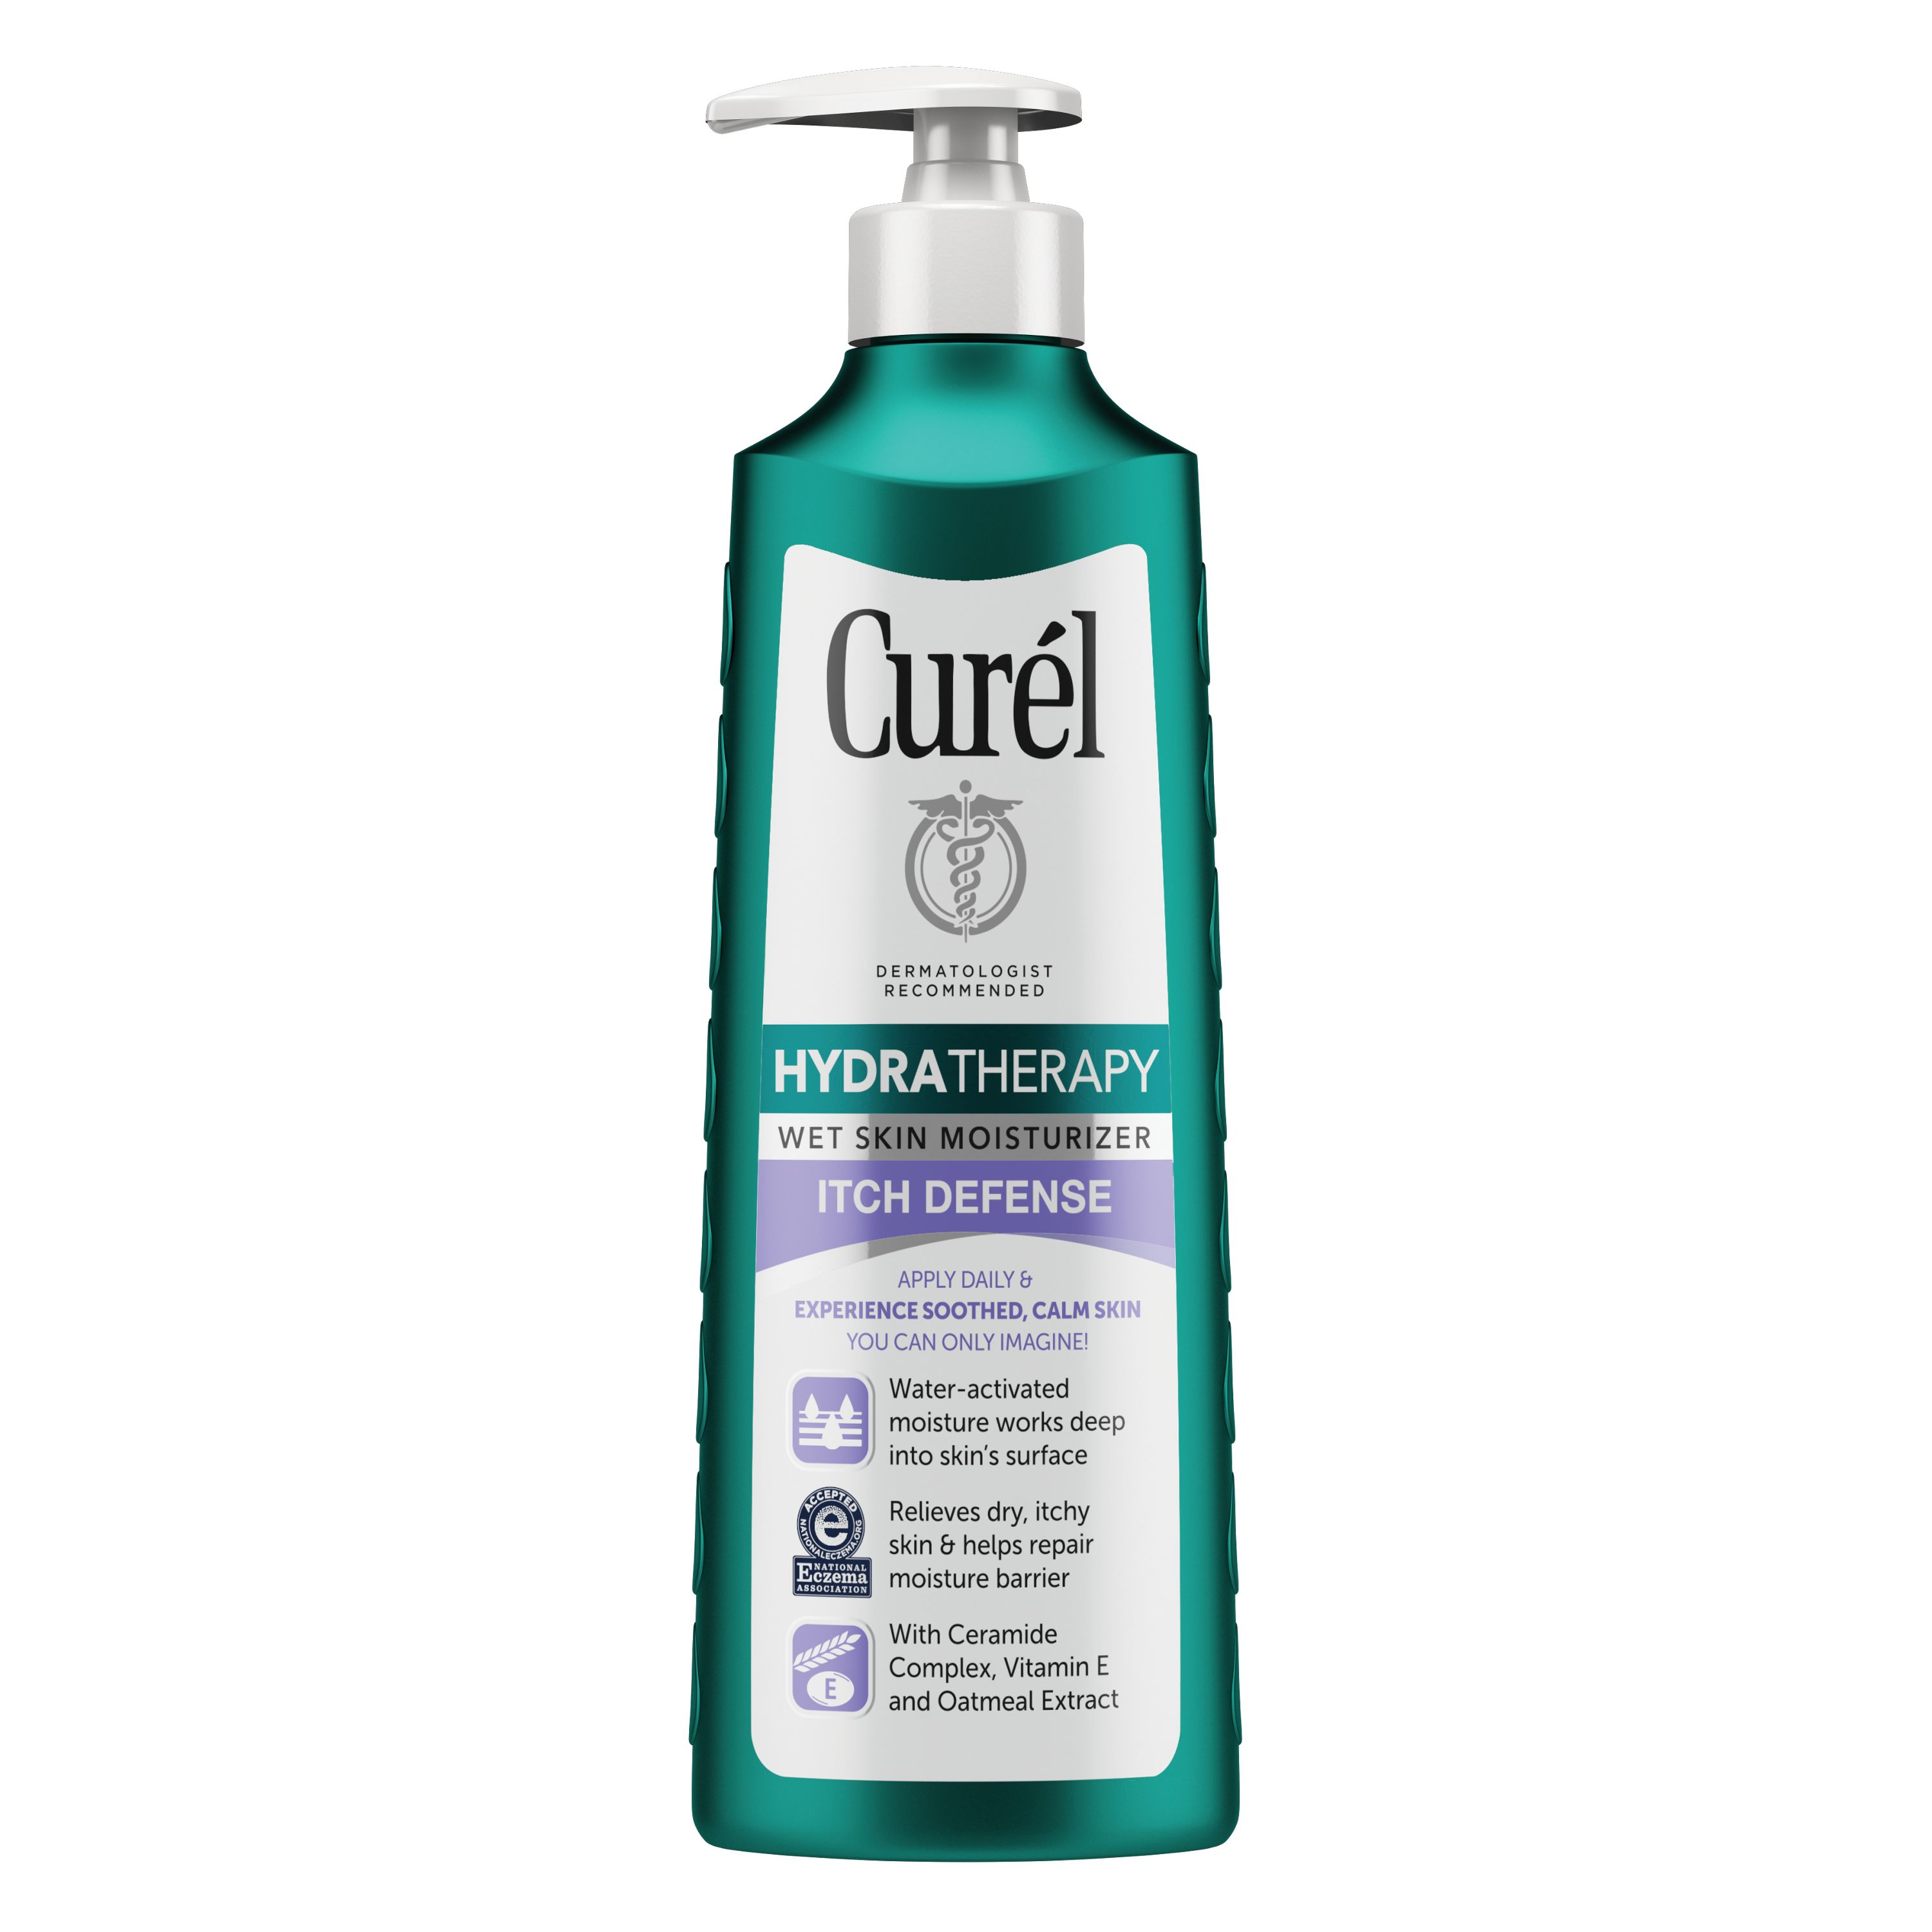 Curel Hydra Therapy Itch Defense Wet Skin Moisturizer for Dry, Itchy Skin, 12 Ounces